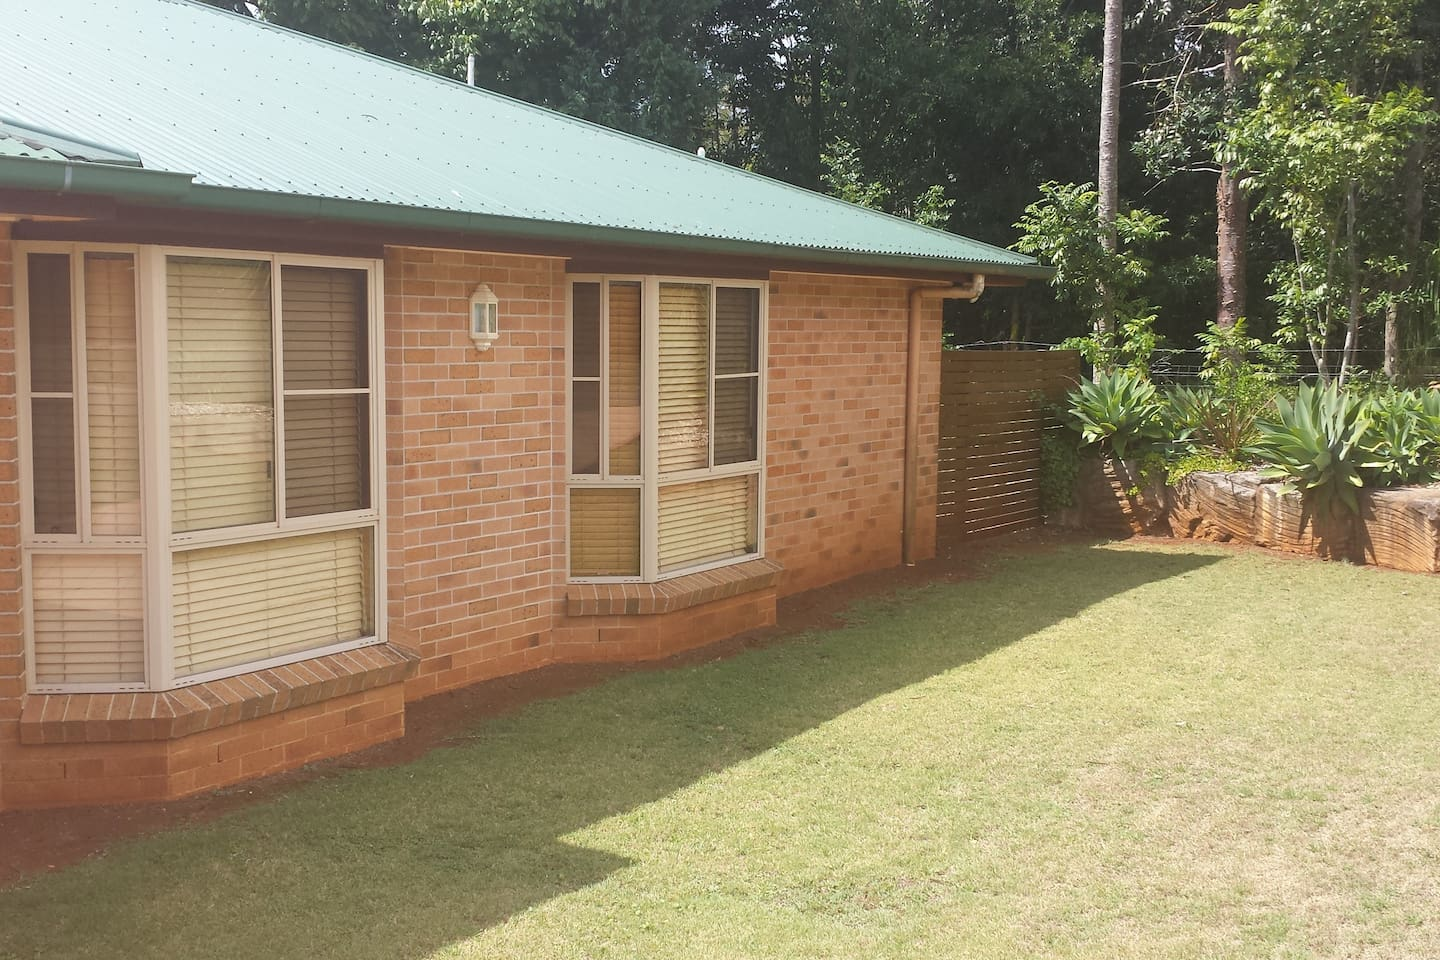 Modern Brick Veneer Air-conditioned 2 Bedroom Unit with Private Entry and on-site Parking